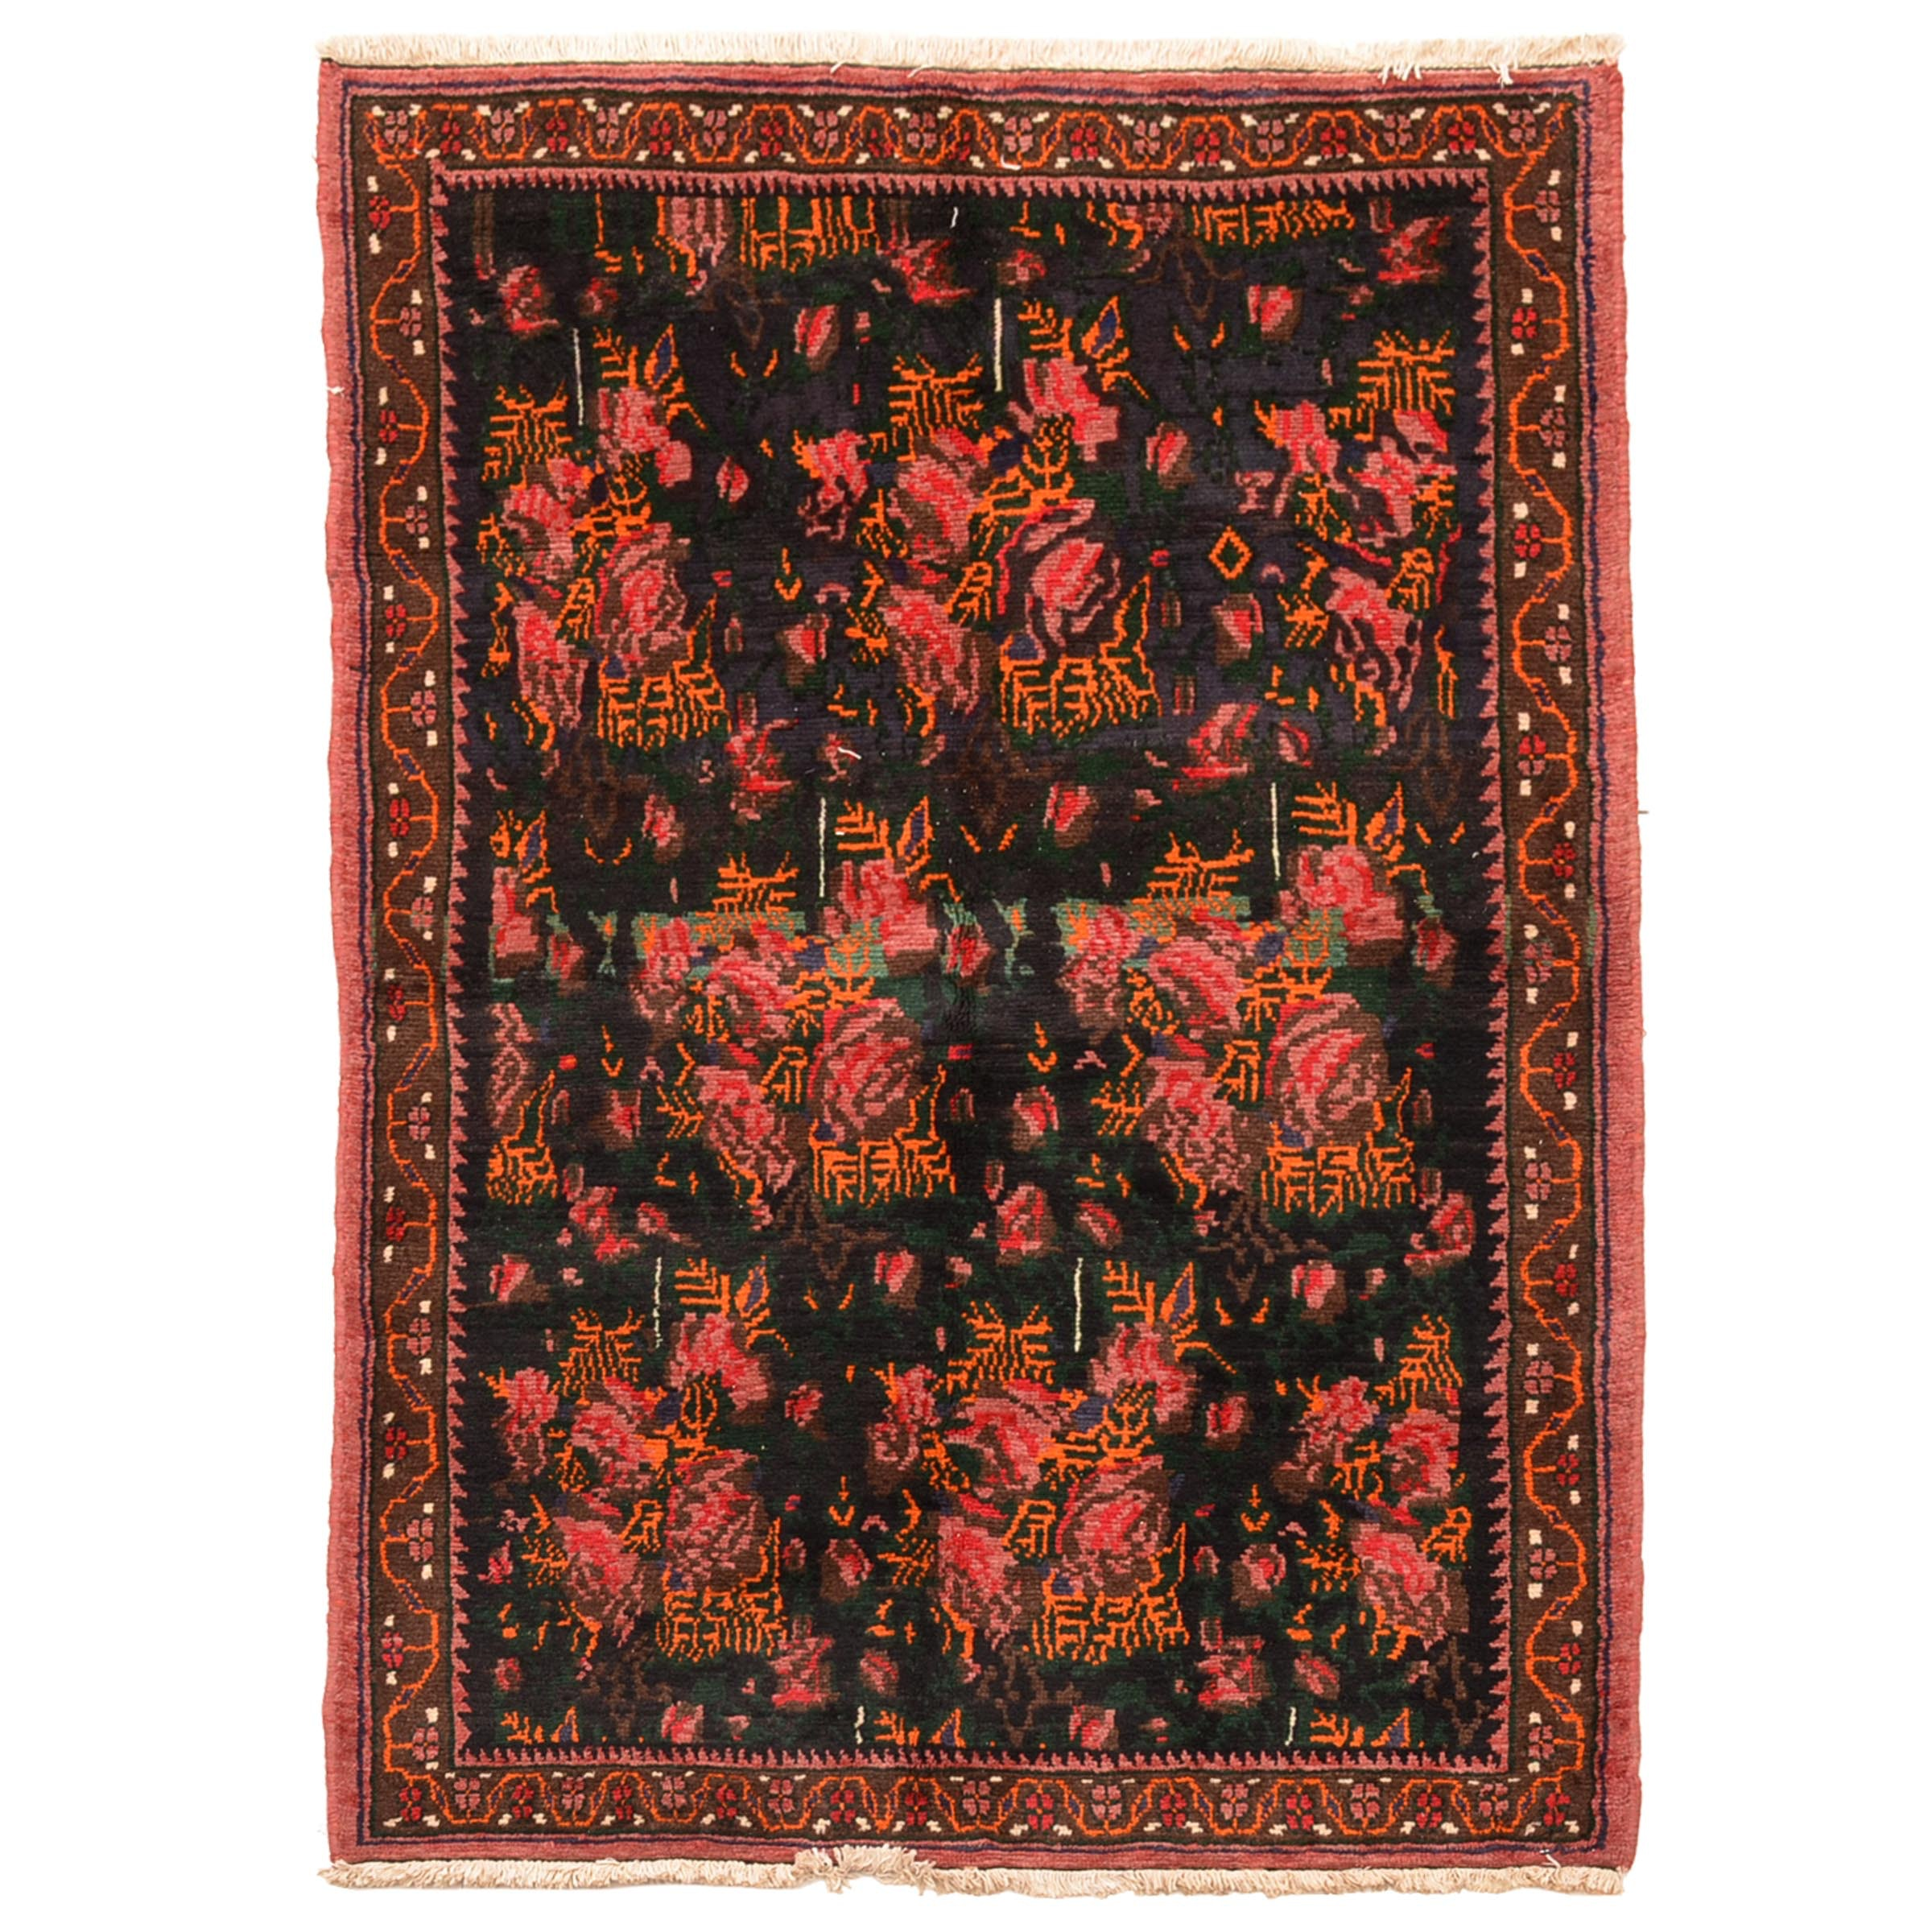 Hand-Knotted Persian-Inspired Area Rug